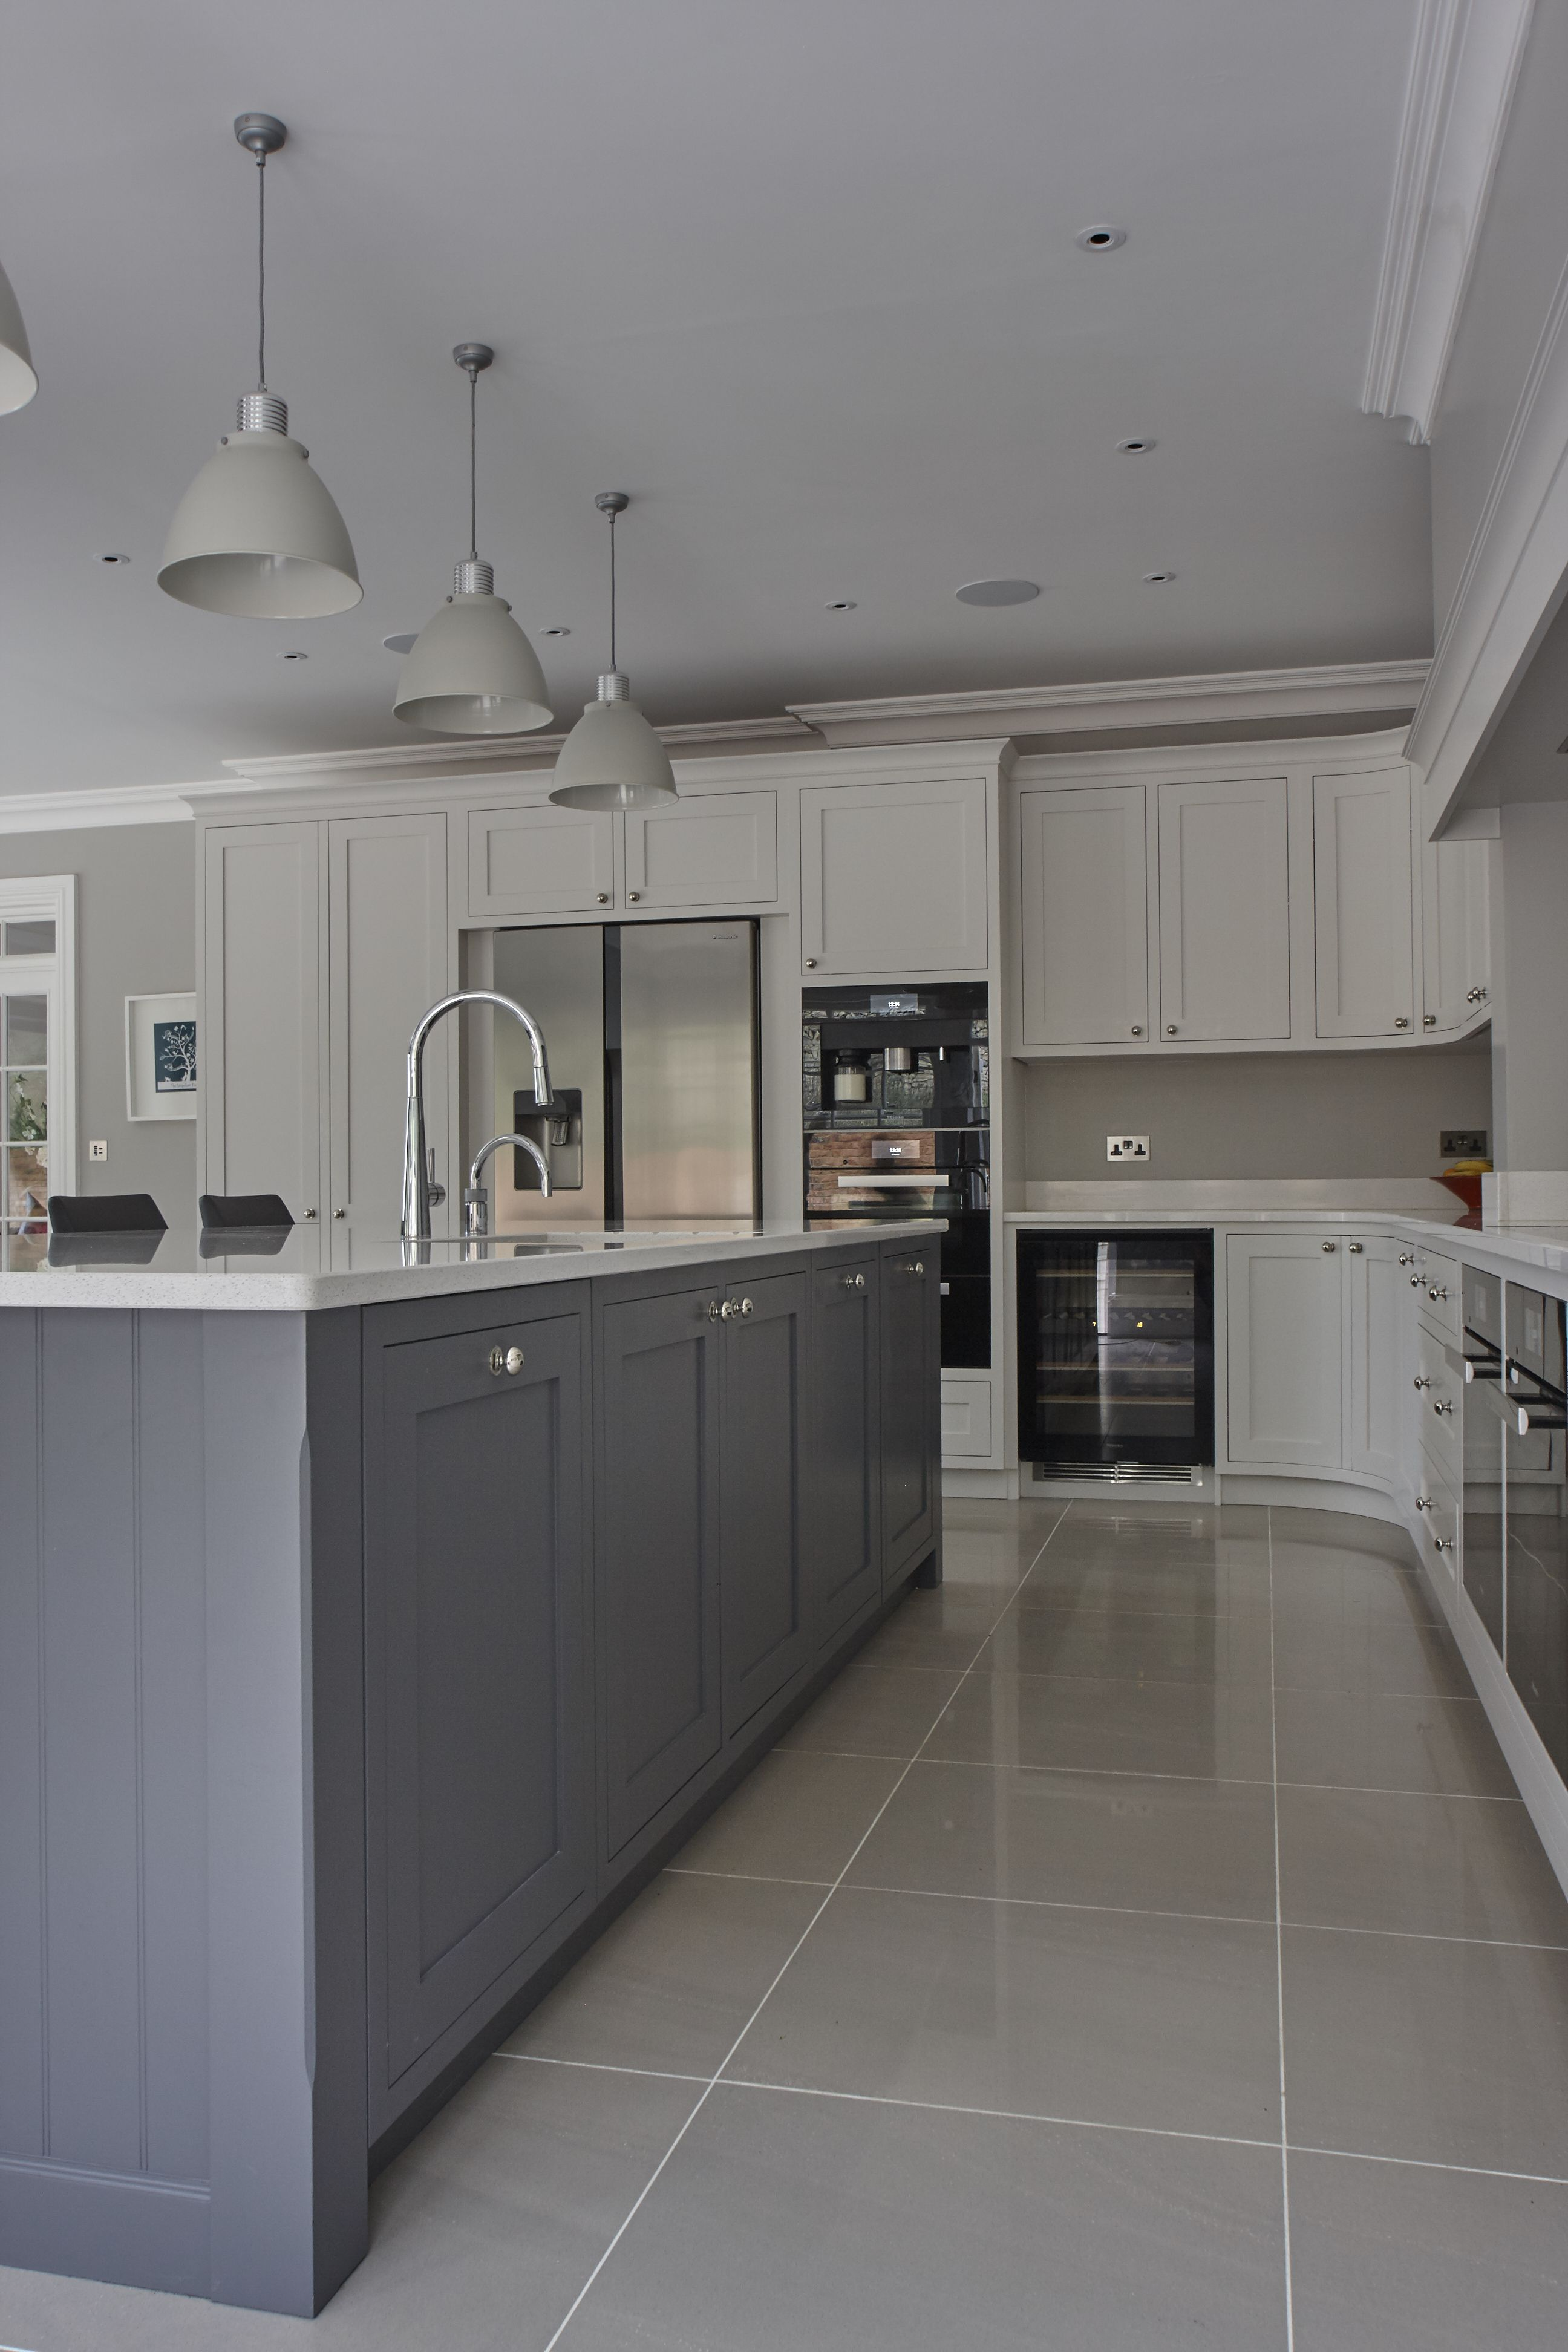 grey kitchen floor ideas the kitchen island in the middle and the color tone 17959